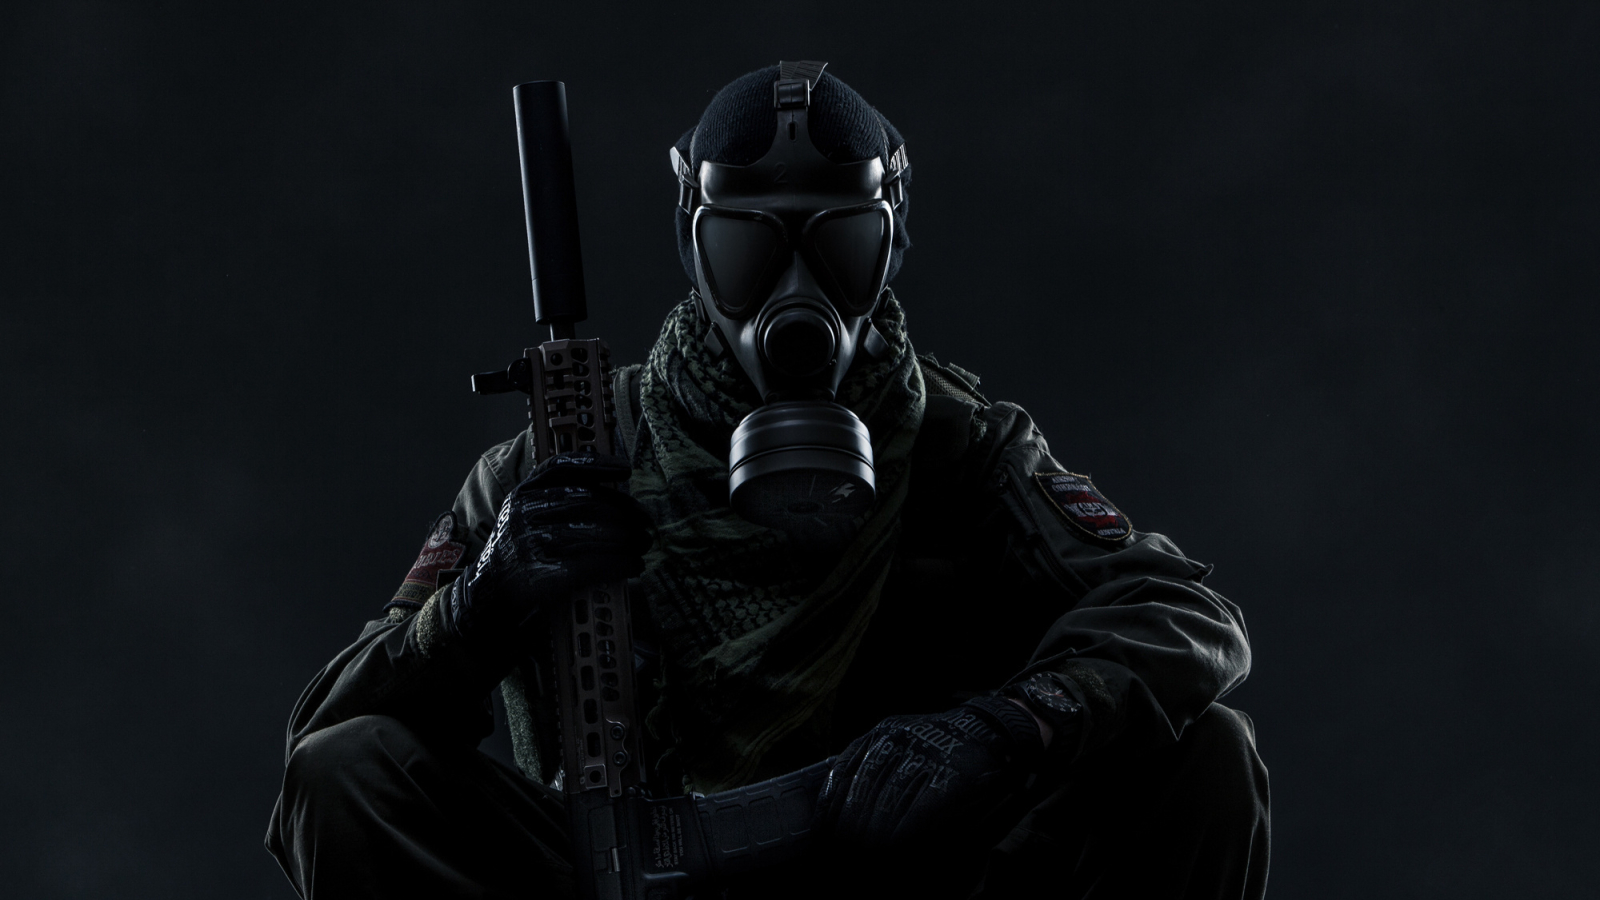 Pubg Gas Mask Guy Hd Games 4k Wallpapers Images: Gas Mask Soldier Tom Clancy's Ghost Recon Wildlands, Full